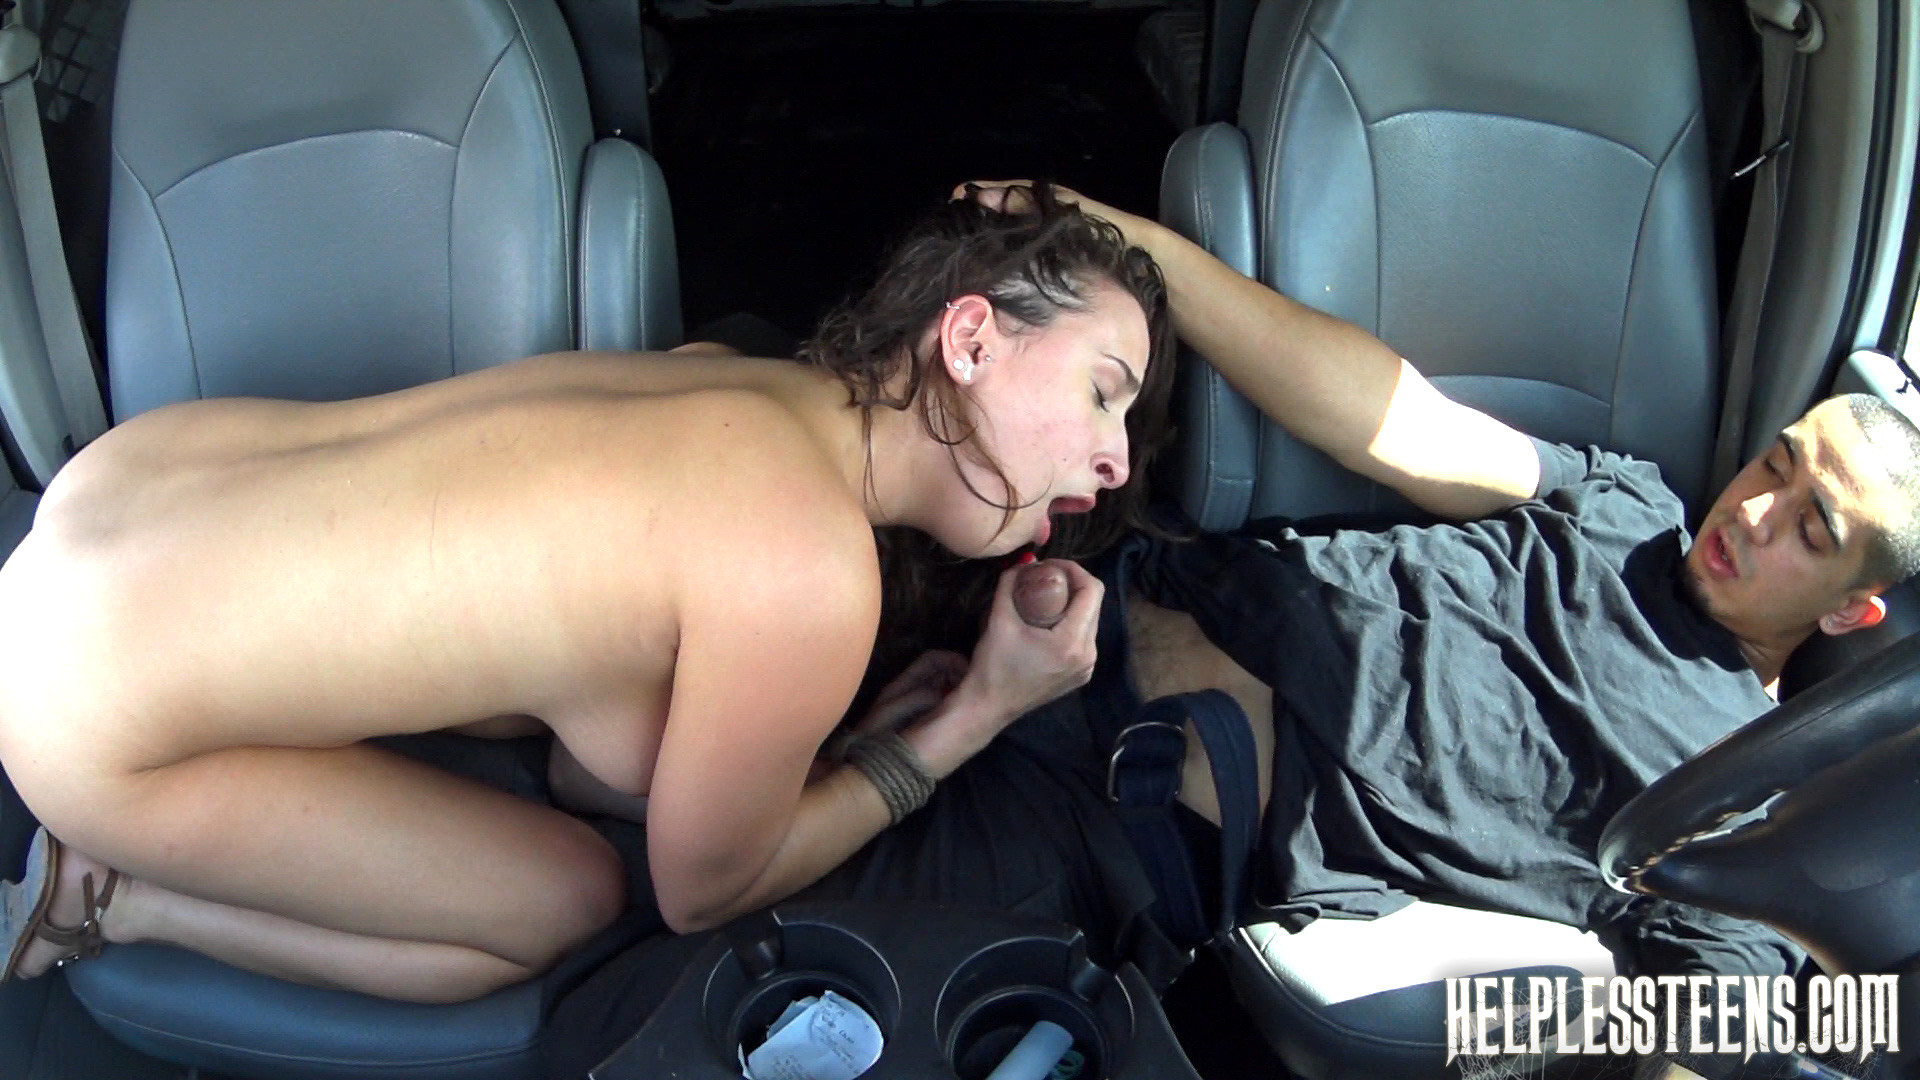 Hot Ebony Vixen Hardcore Car Sex Pov